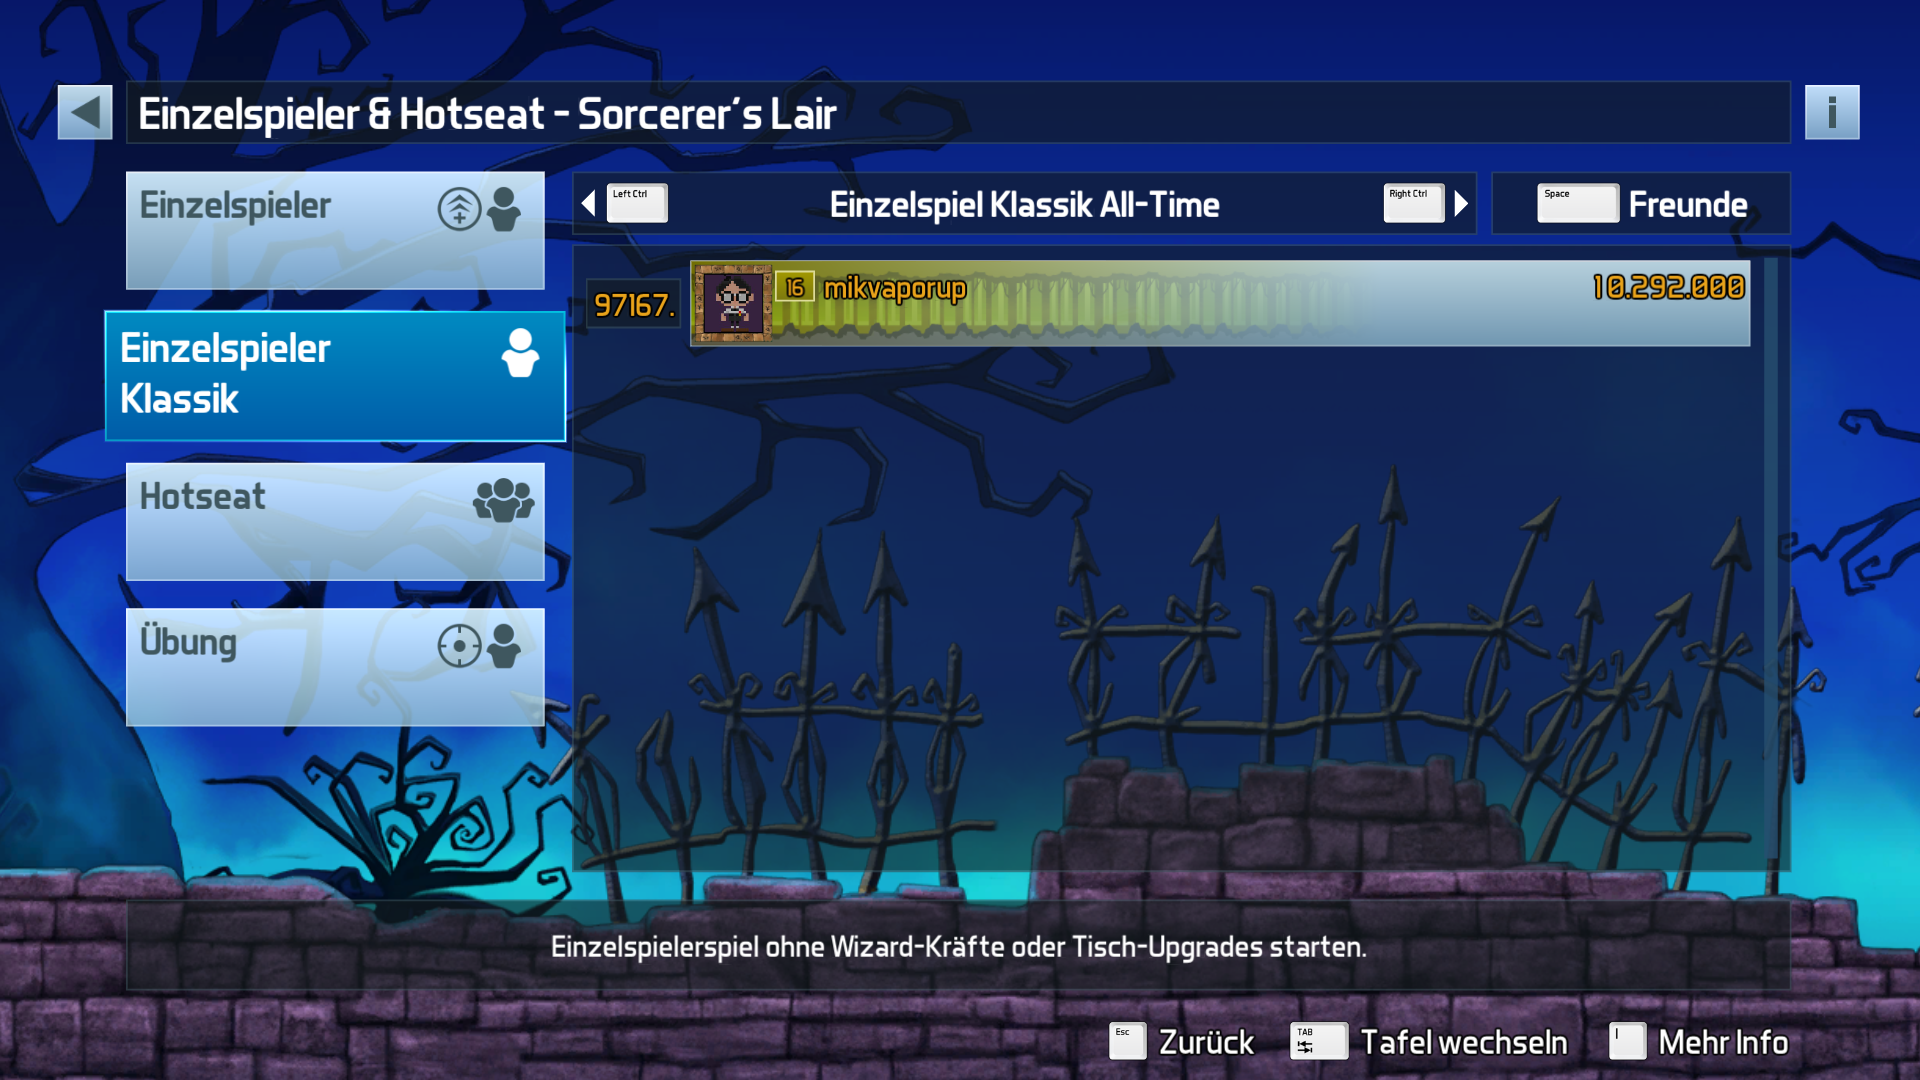 mikvaporup: Pinball FX3: Sorcerer's Lair [Classic] (PC) 10,292,000 points on 2019-11-21 00:19:09